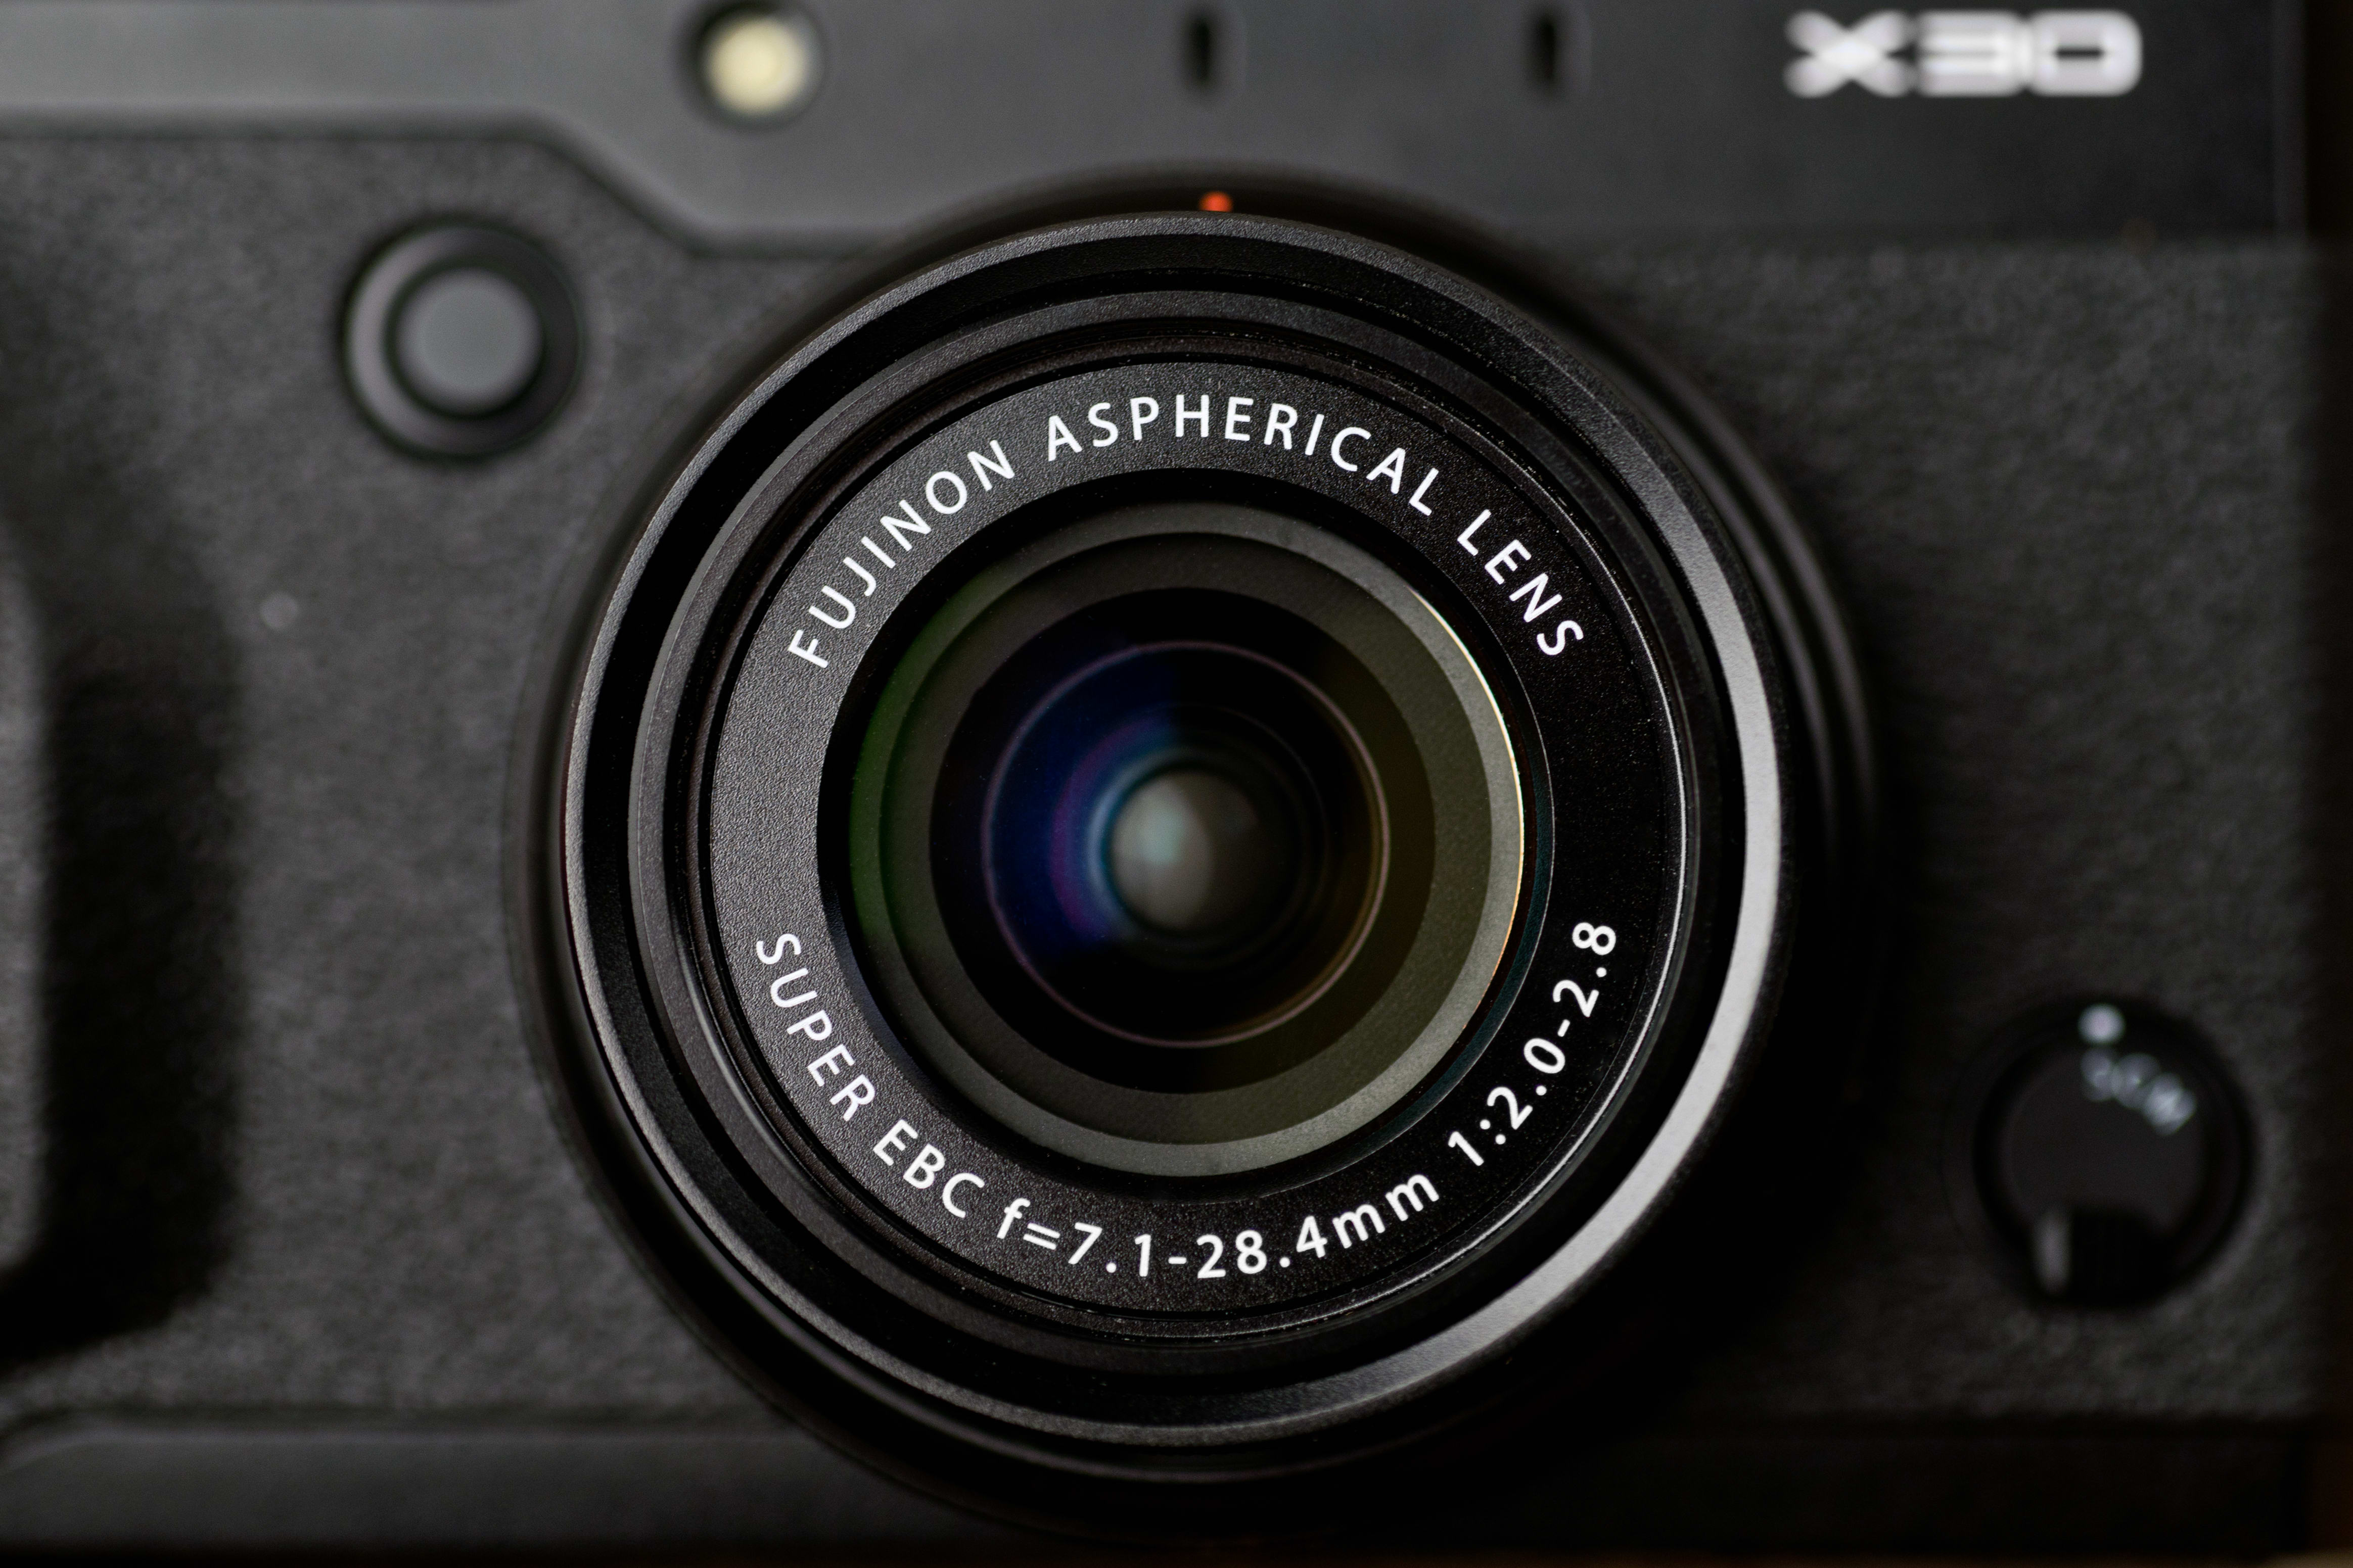 A photo of the Fujifilm X30's lens.